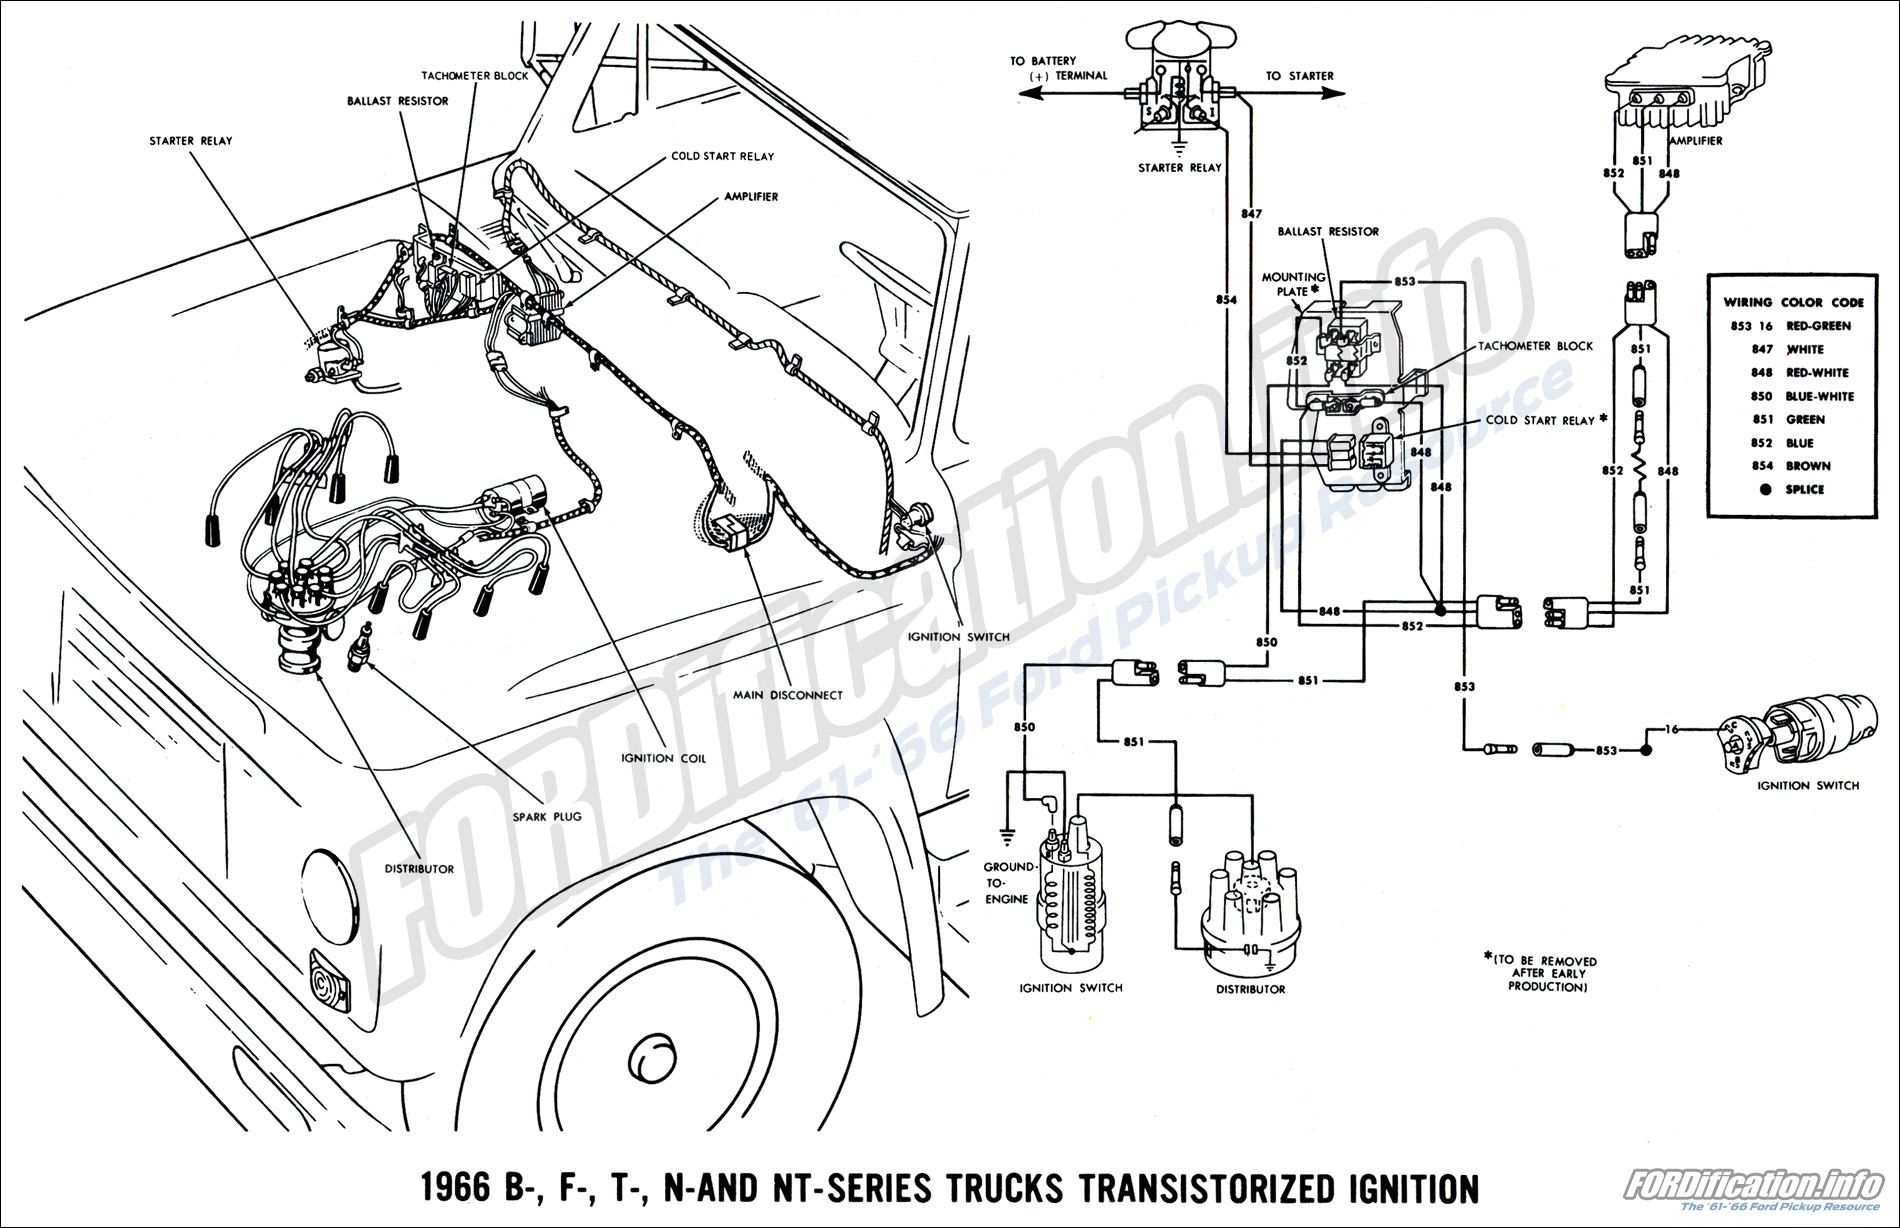 66transistorizedignition 1966 ford truck wiring diagrams fordification info the '61 '66 1966 ford truck wiring diagram at aneh.co